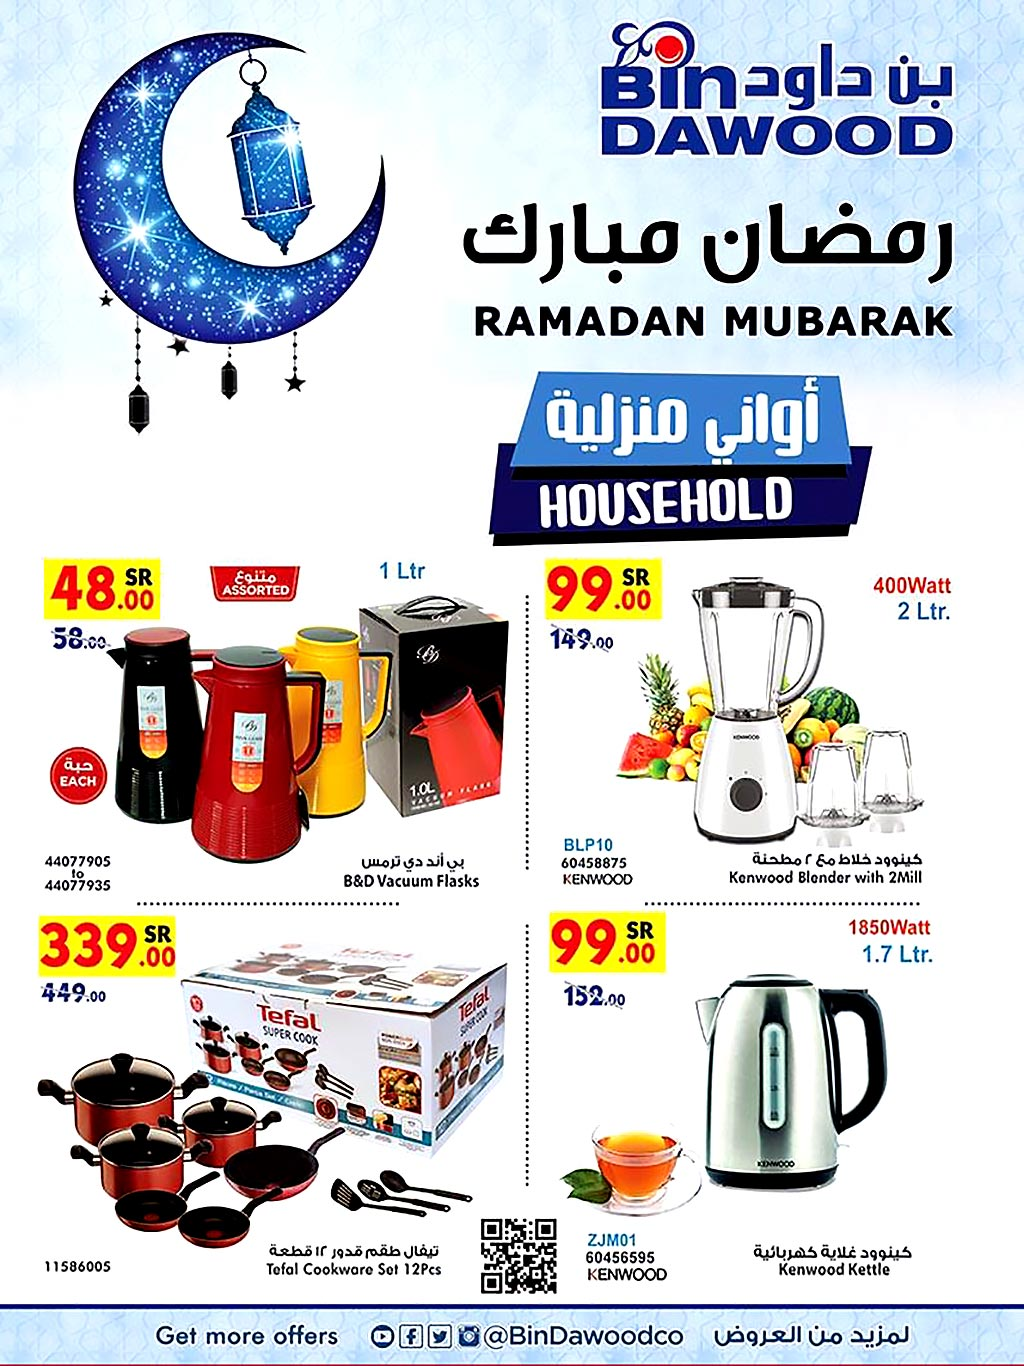 bindawood offers from 15apr to 5may 2020 page number 1 عروض بـن داوود من 15 إبريل حتى 5 مايو 2020 صفحة رقم 1